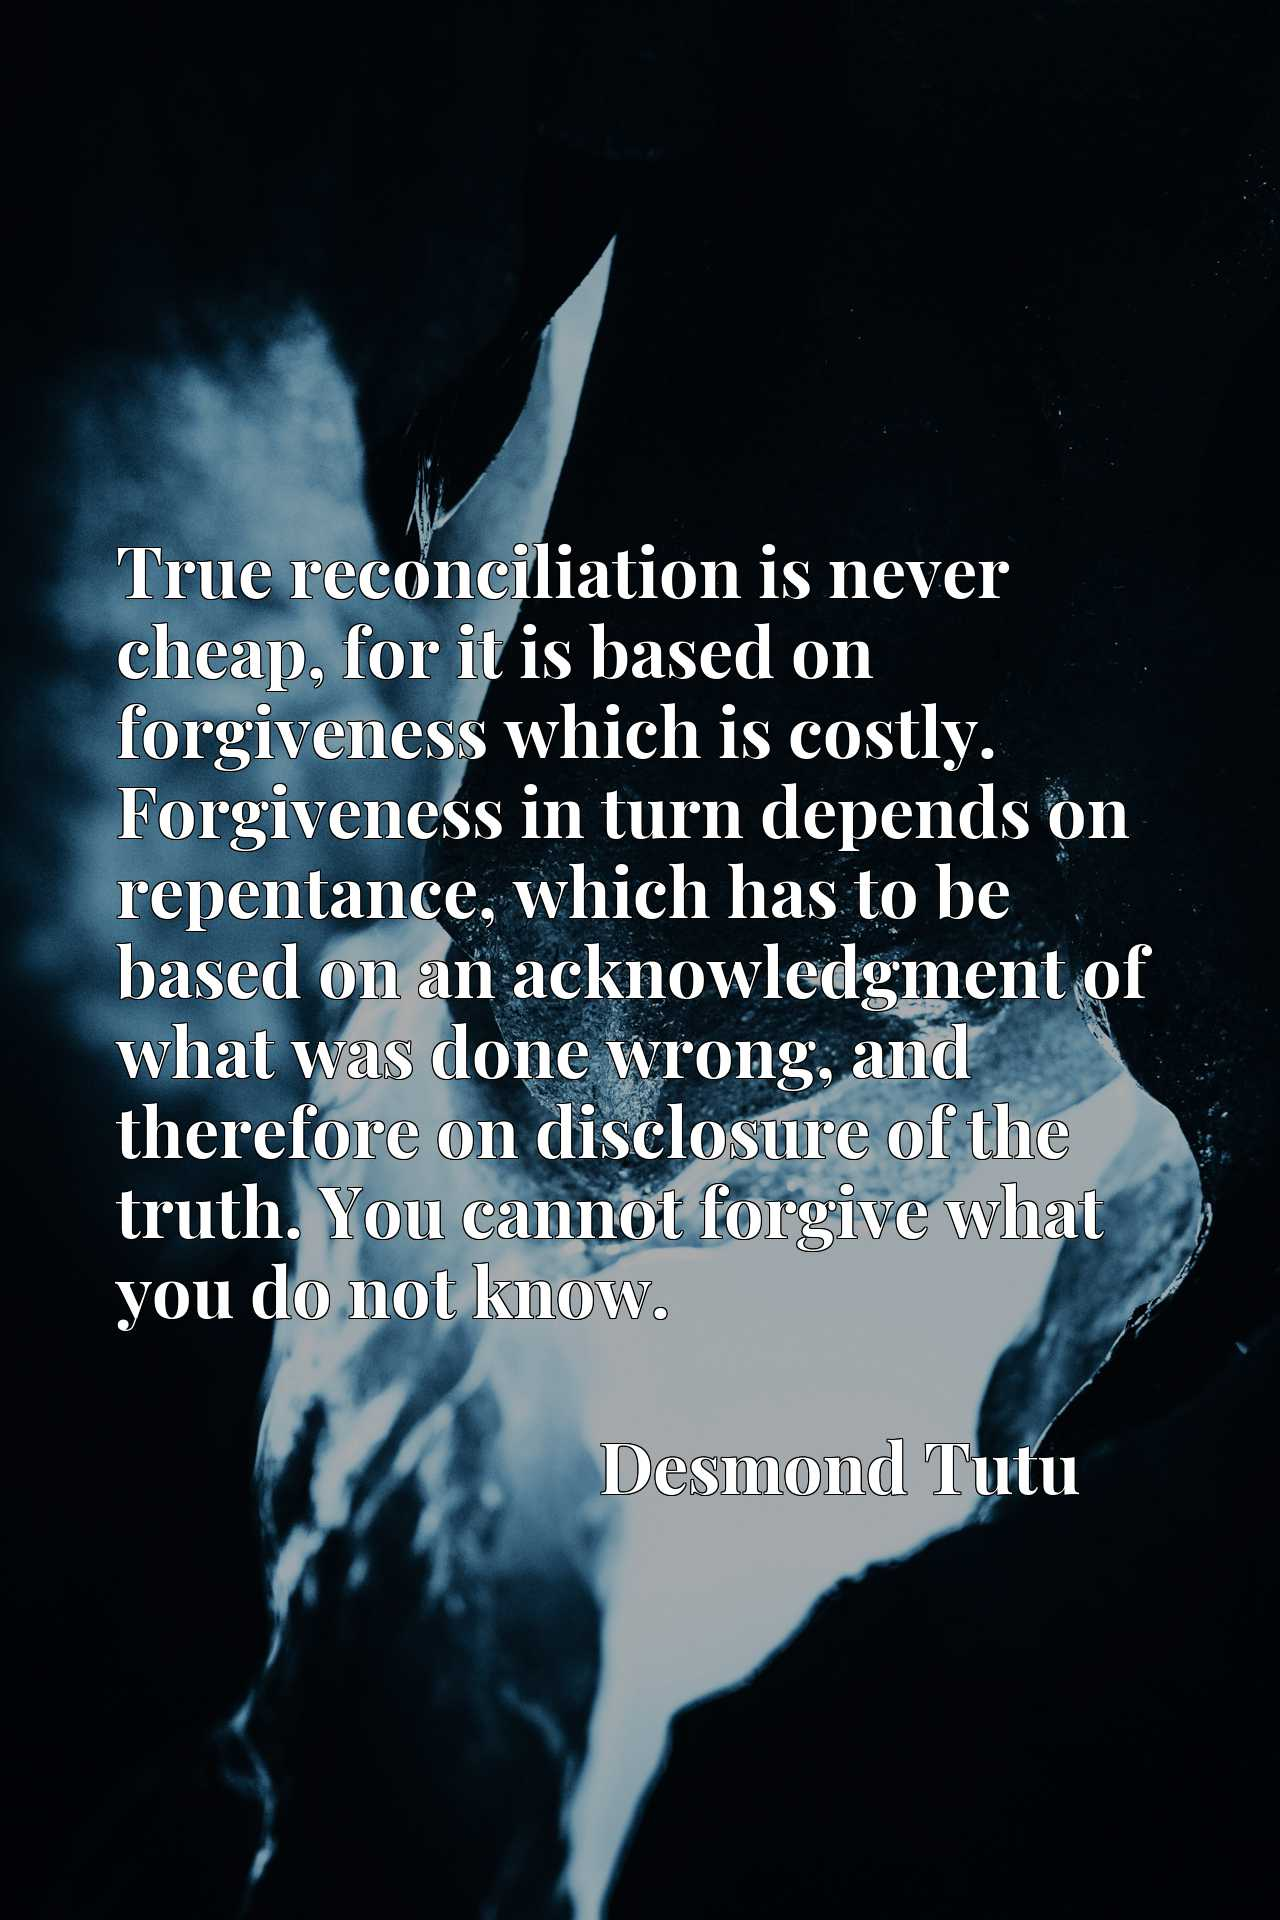 True reconciliation is never cheap, for it is based on forgiveness which is costly. Forgiveness in turn depends on repentance, which has to be based on an acknowledgment of what was done wrong, and therefore on disclosure of the truth. You cannot forgive what you do not know.